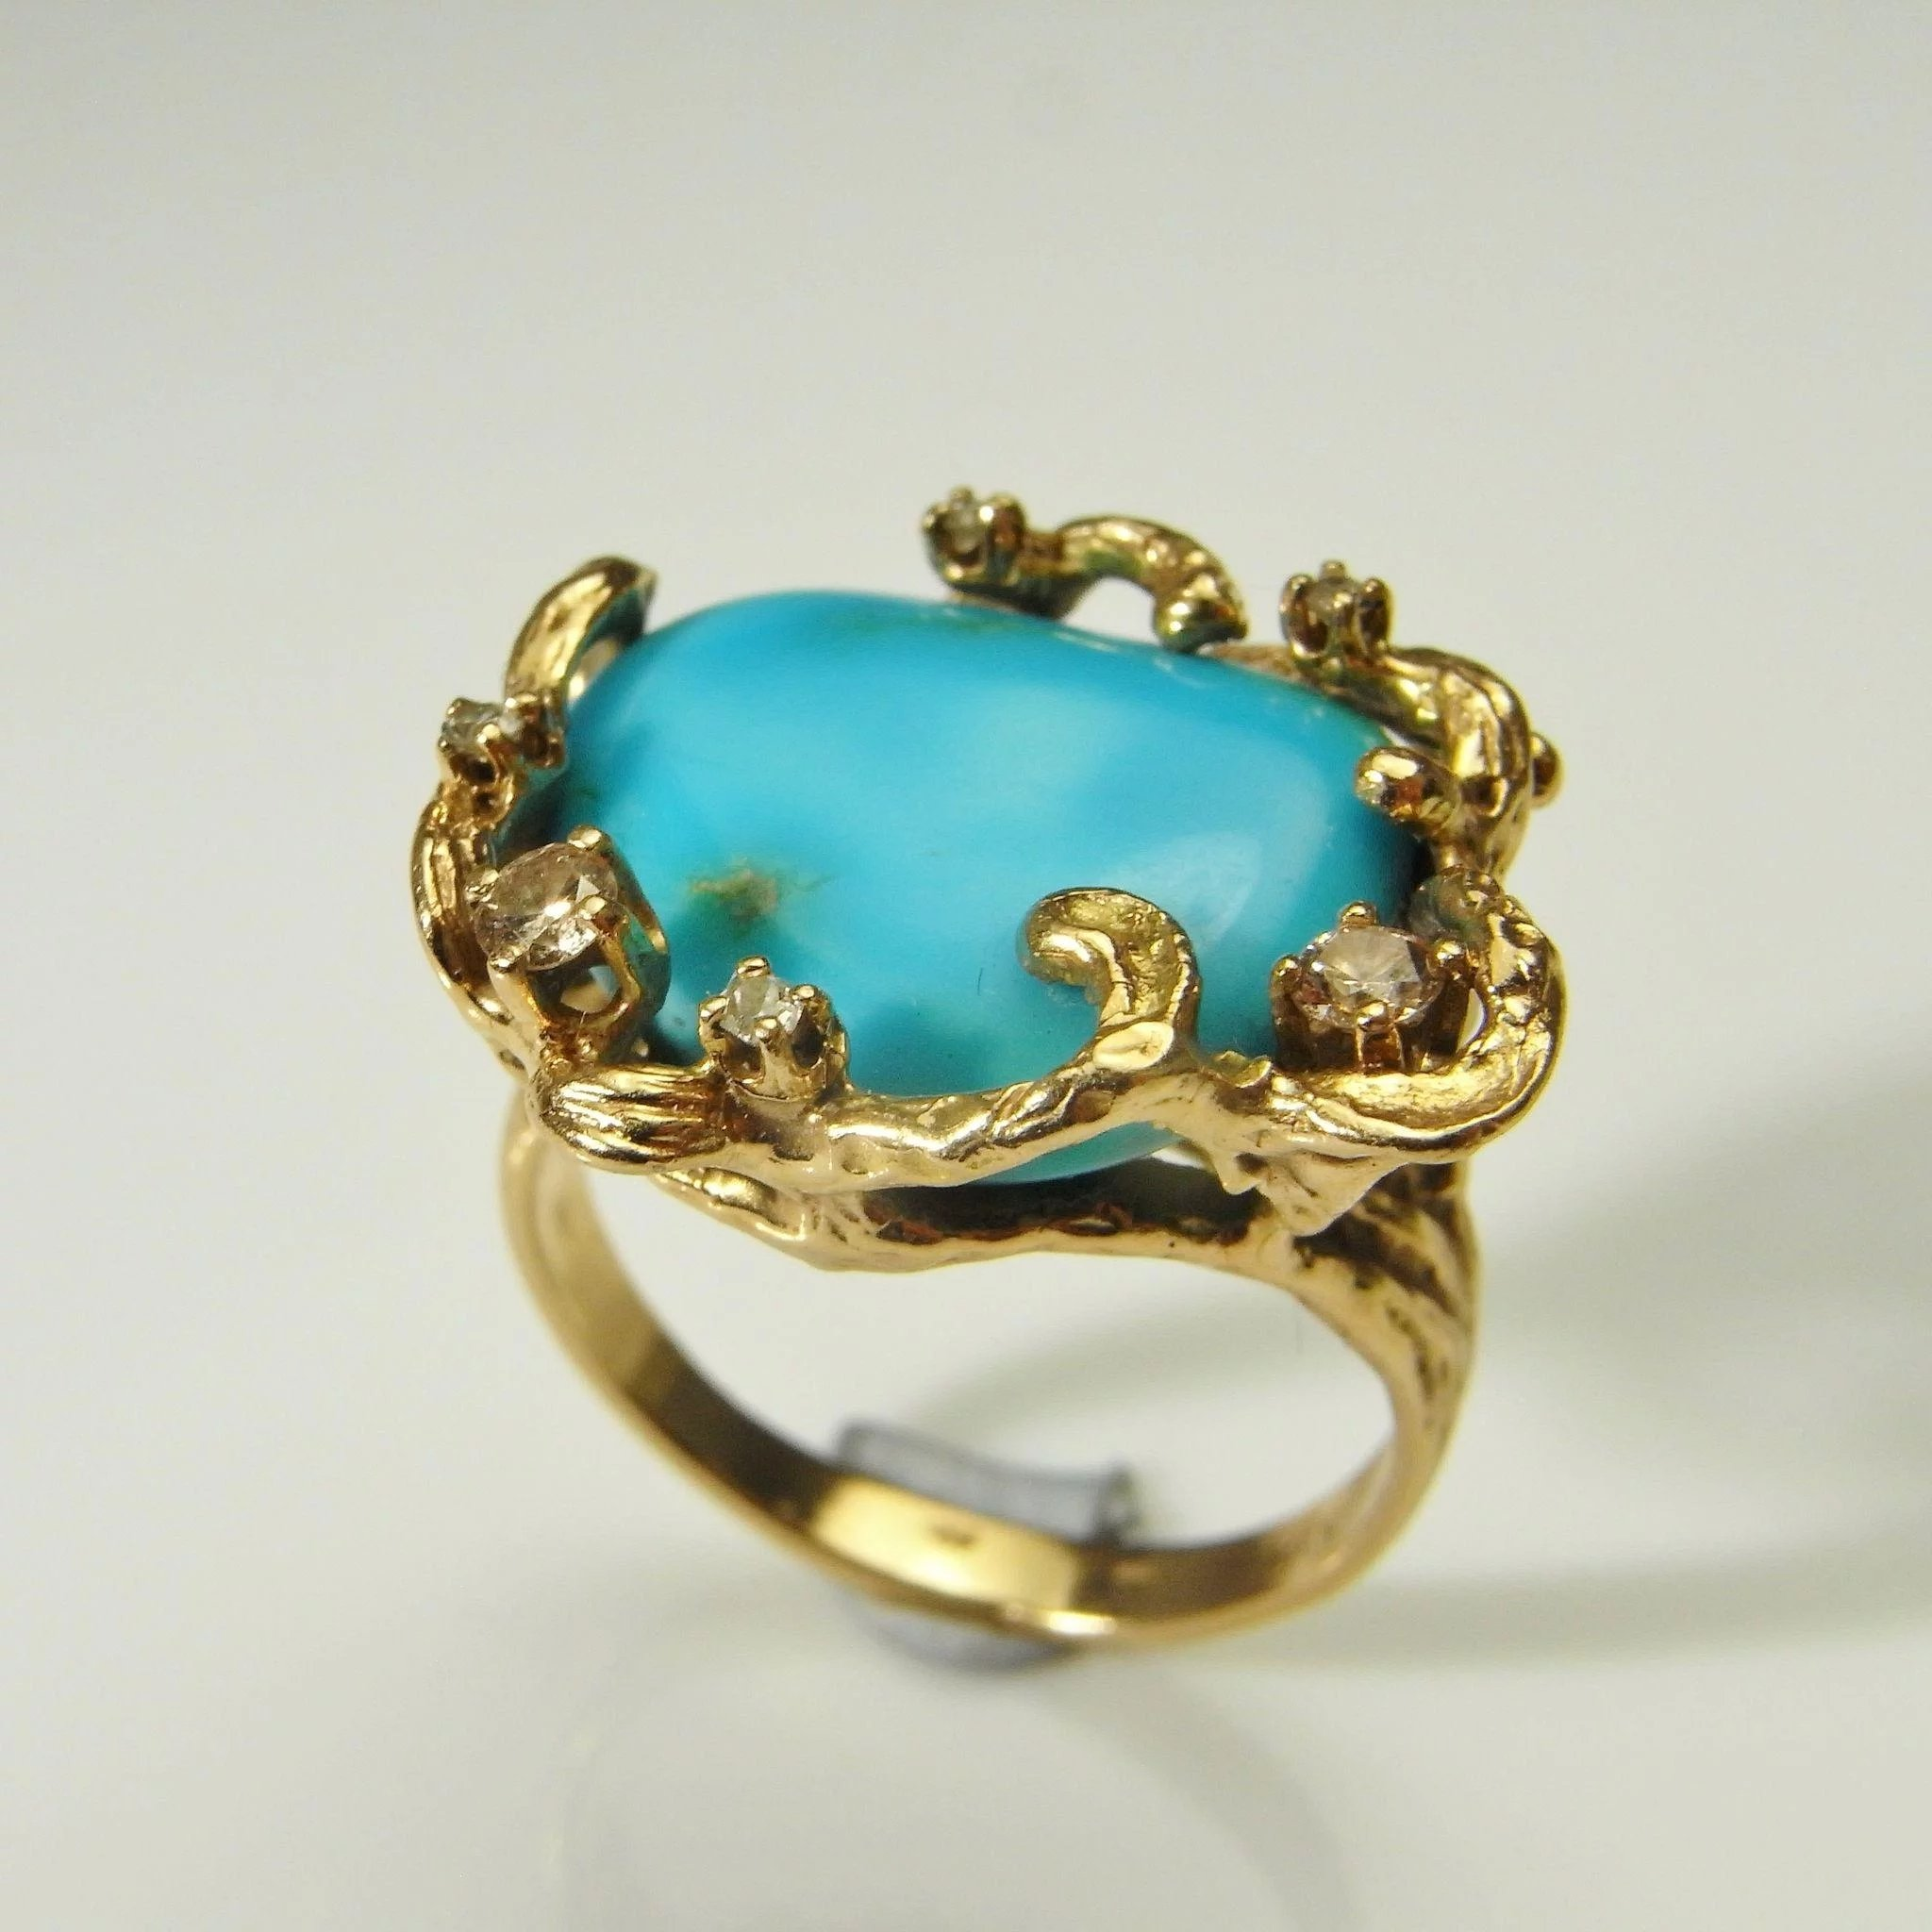 Turquoise Diamond Ring 14k Solid Gold Retro Ring Turquoise Cabochon